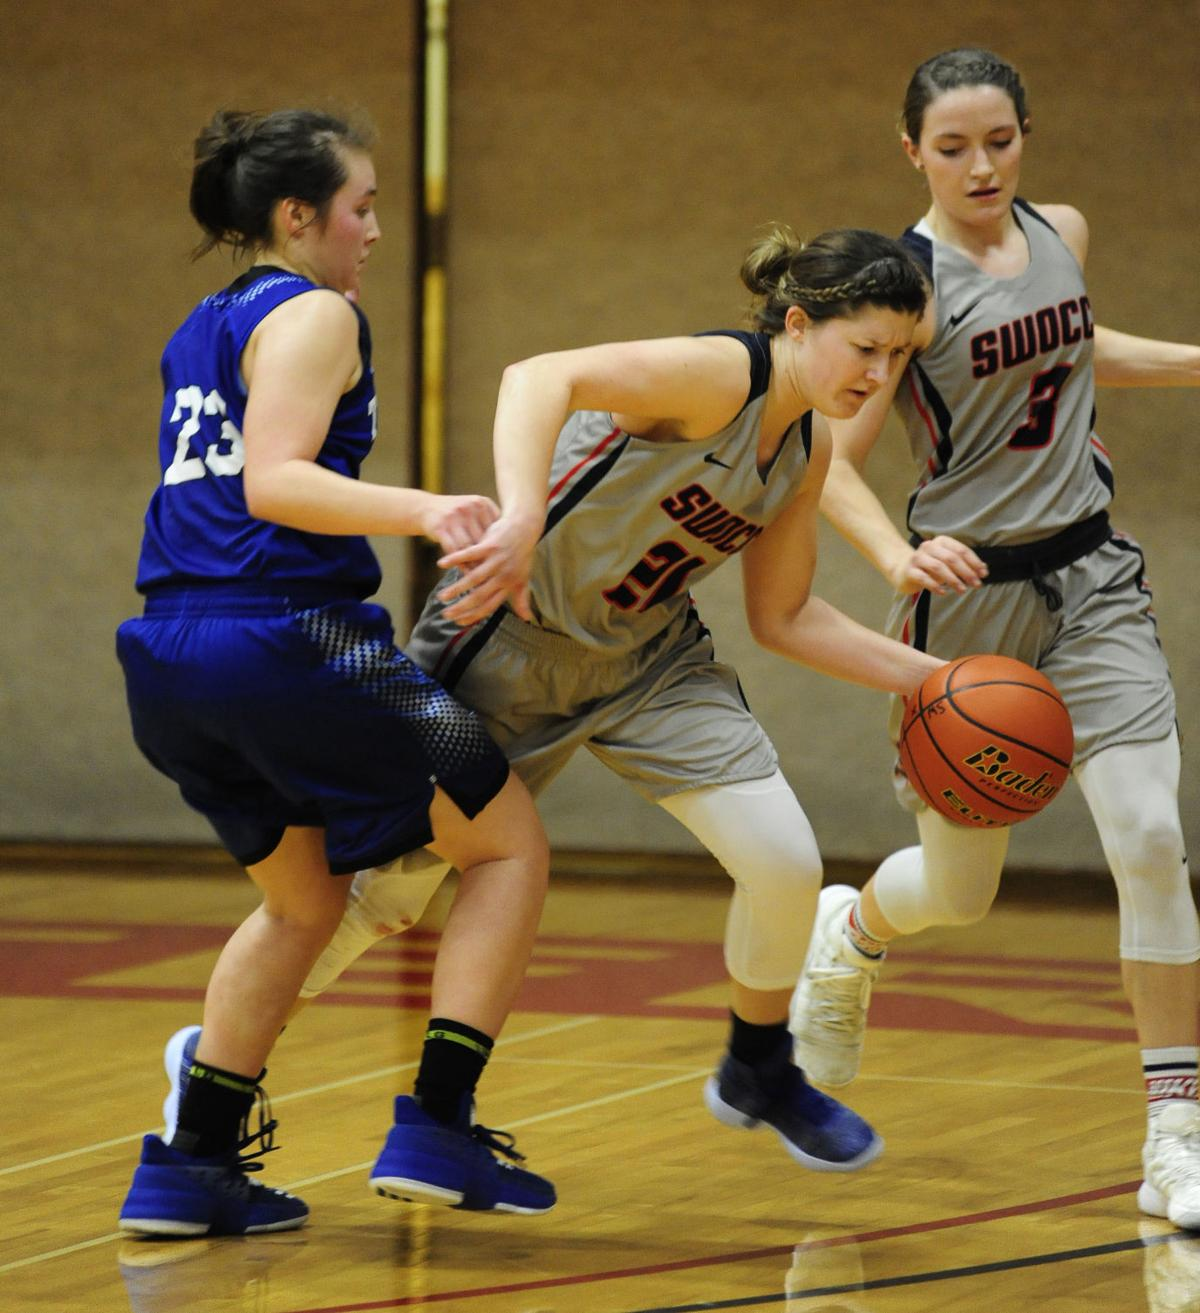 SWOCC women fall to the Titans, 82-68